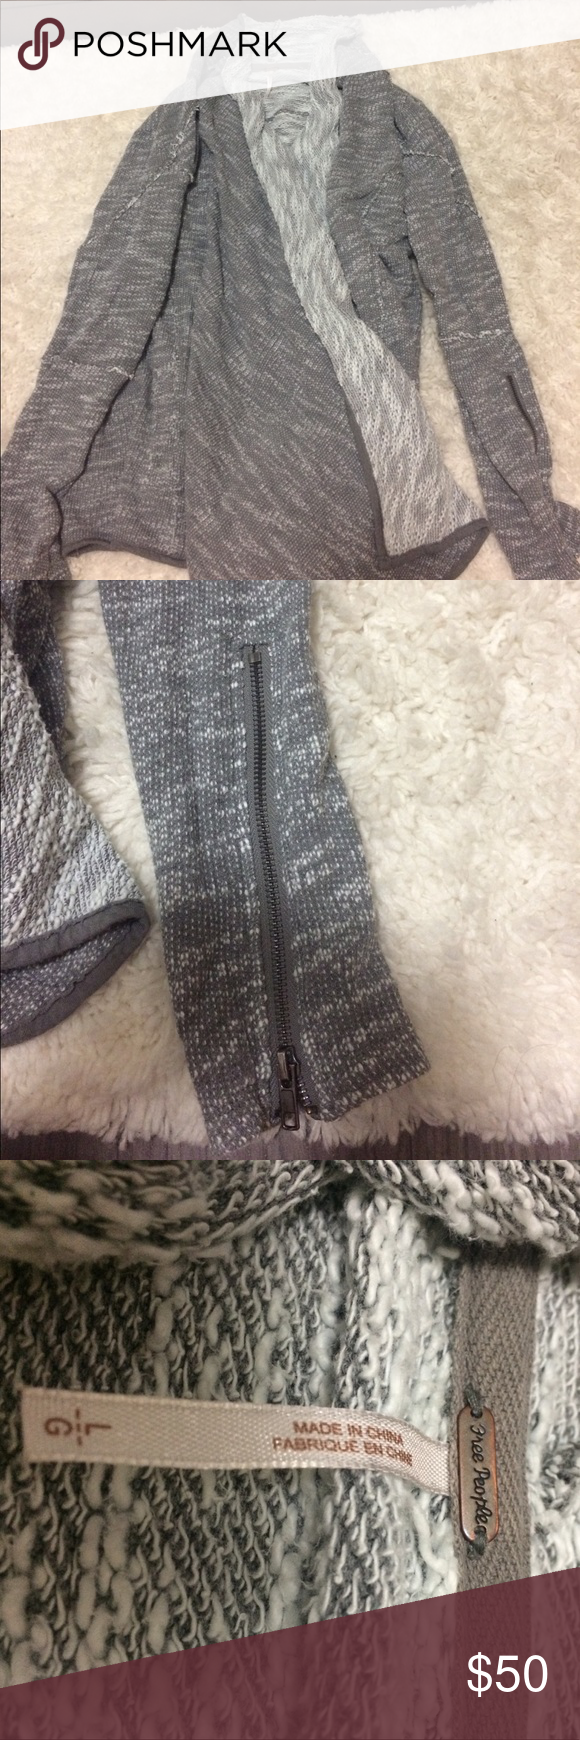 Grey  Free People cardigan Very comfy stylish grey Free People cardigan with zippers at the end of sleeves. Worn a few times in excellent condition. Can be worn with anything. Free People Sweaters Cardigans